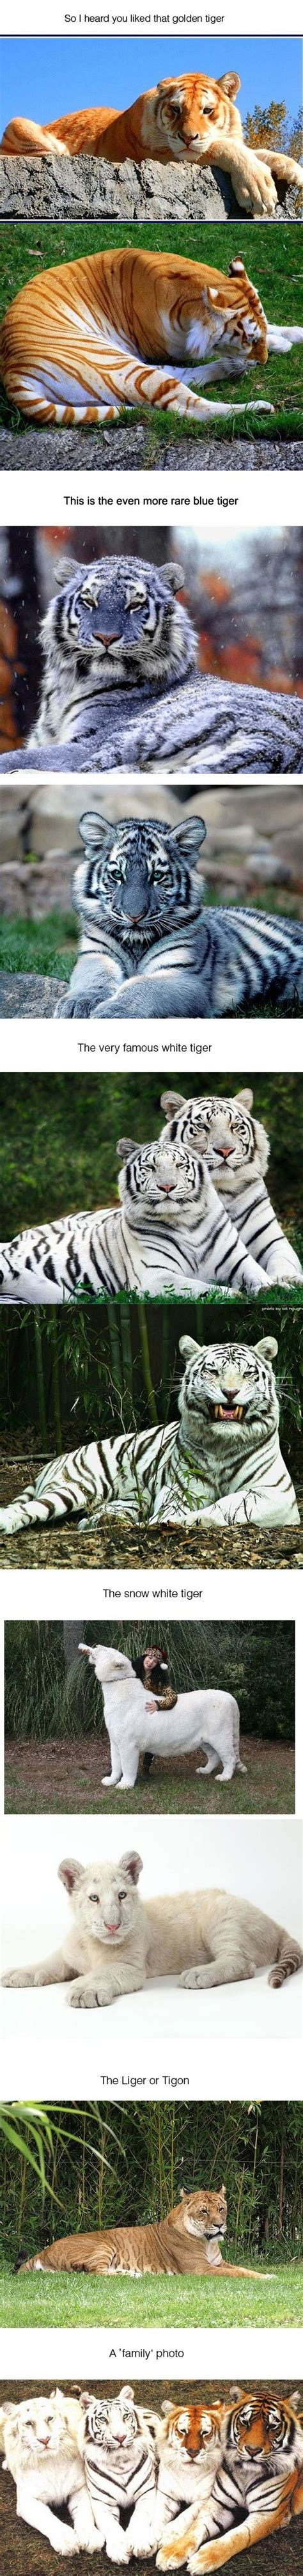 Rare Tigers The Coolest Things Ever Seen Animals